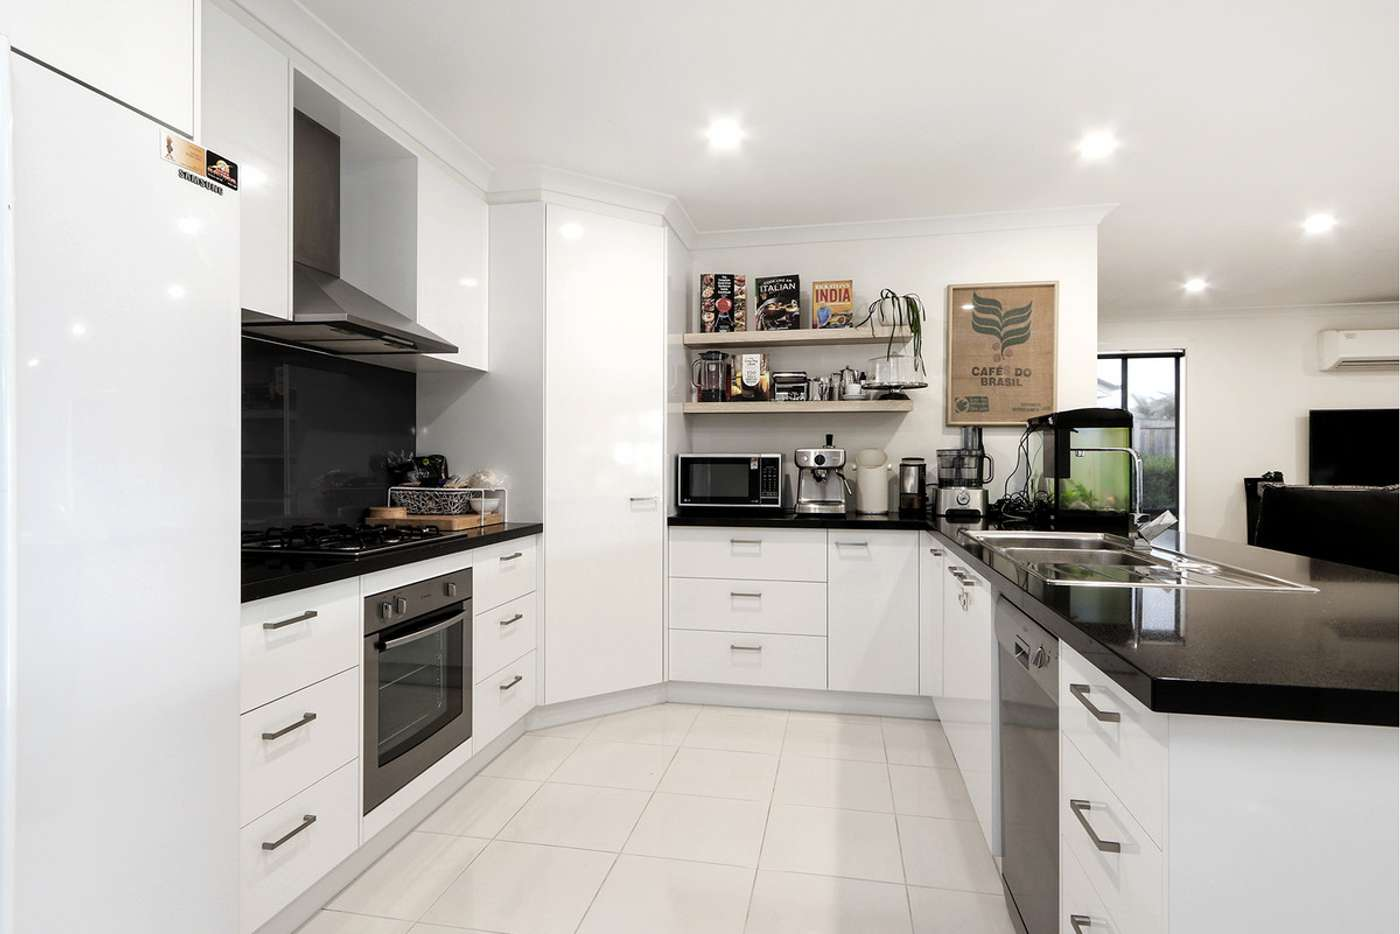 Fifth view of Homely house listing, 6 Camellia Close, Sale VIC 3850